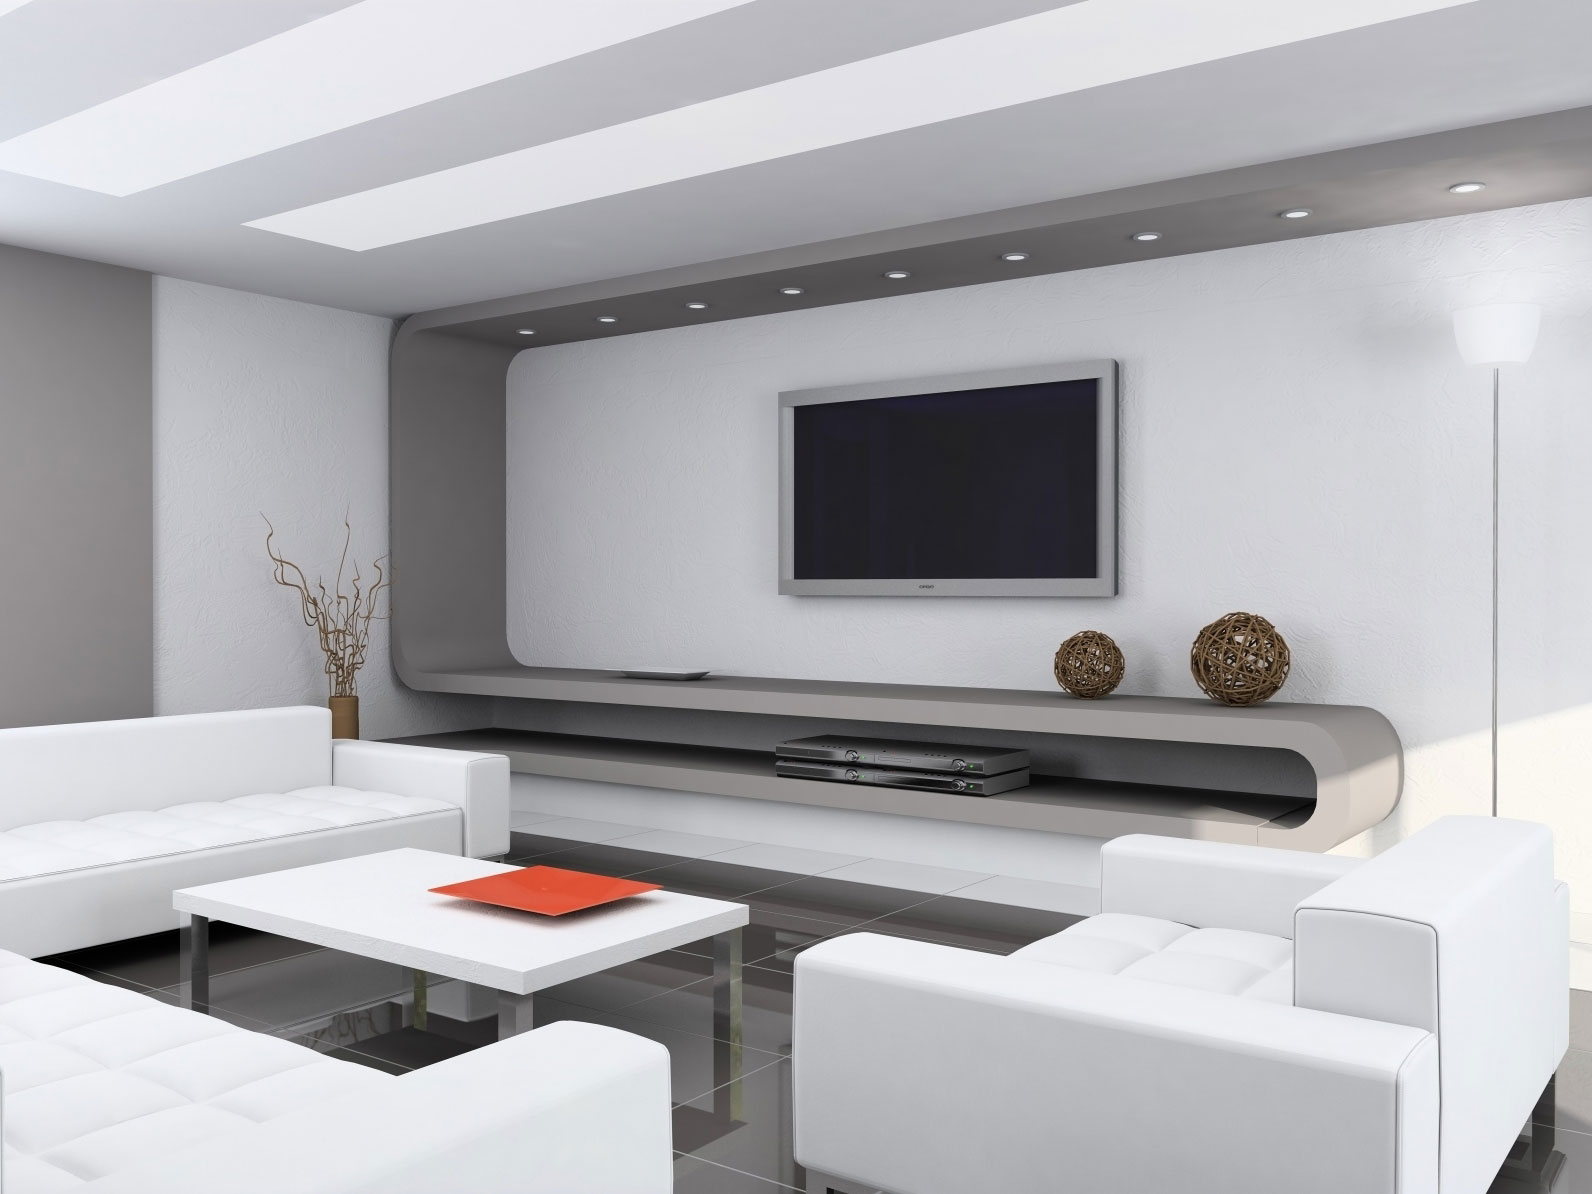 Home design with minimalist interior design - Minimalist home ...